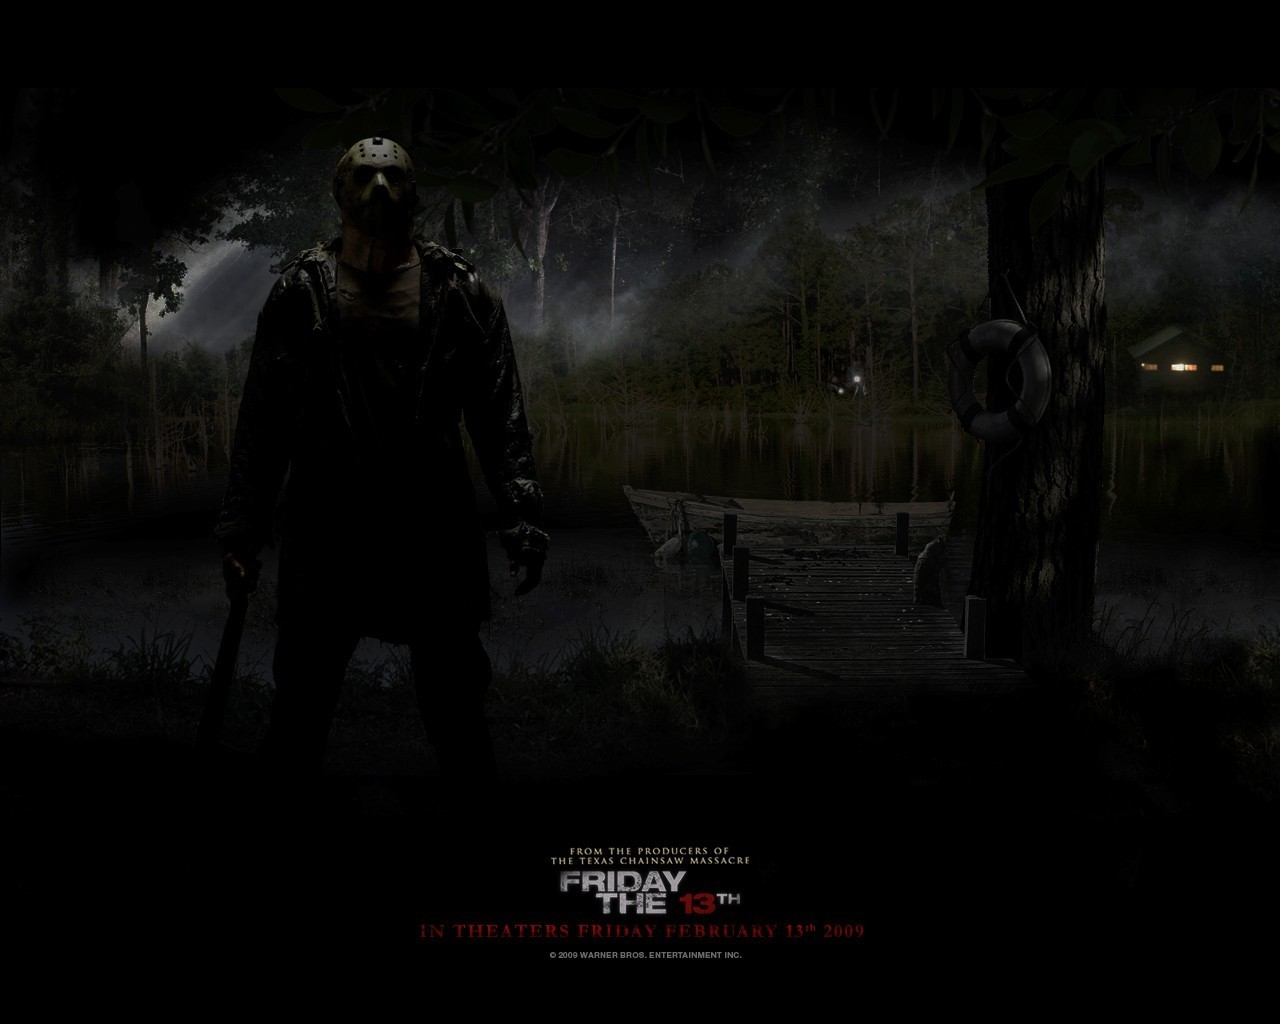 jason voorhees images friday the 13th hd wallpaper and